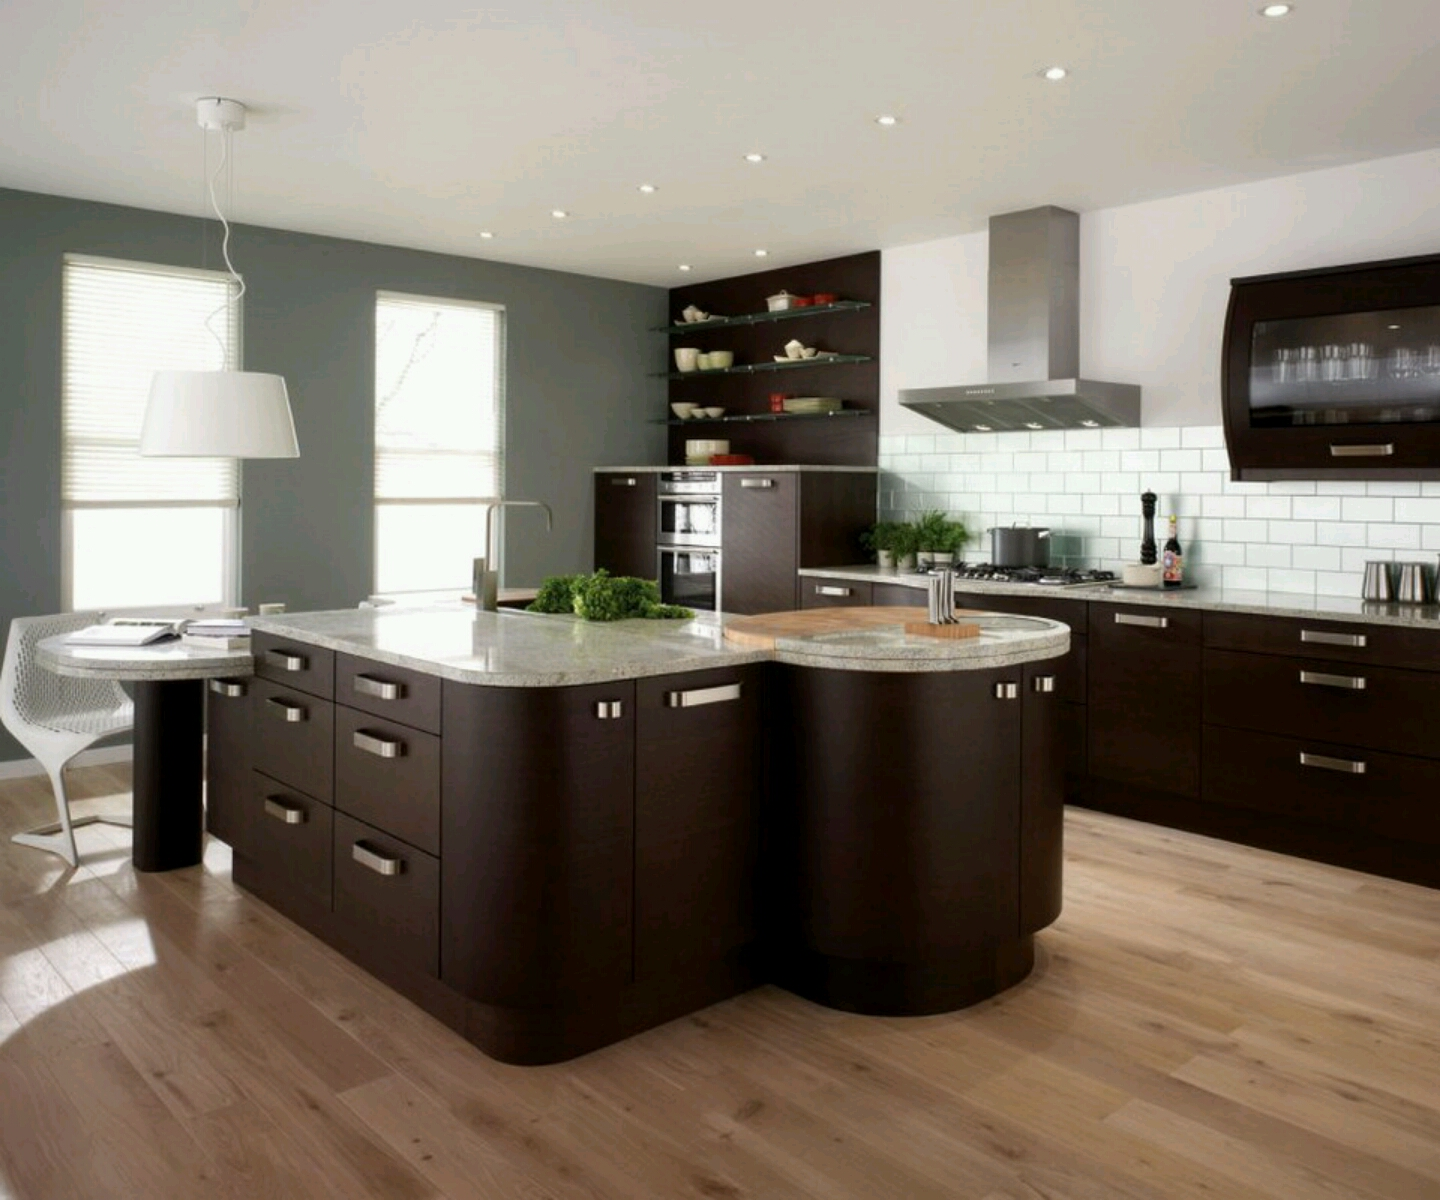 Modern home kitchen cabinet designs ideas new home designs New contemporary kitchen design